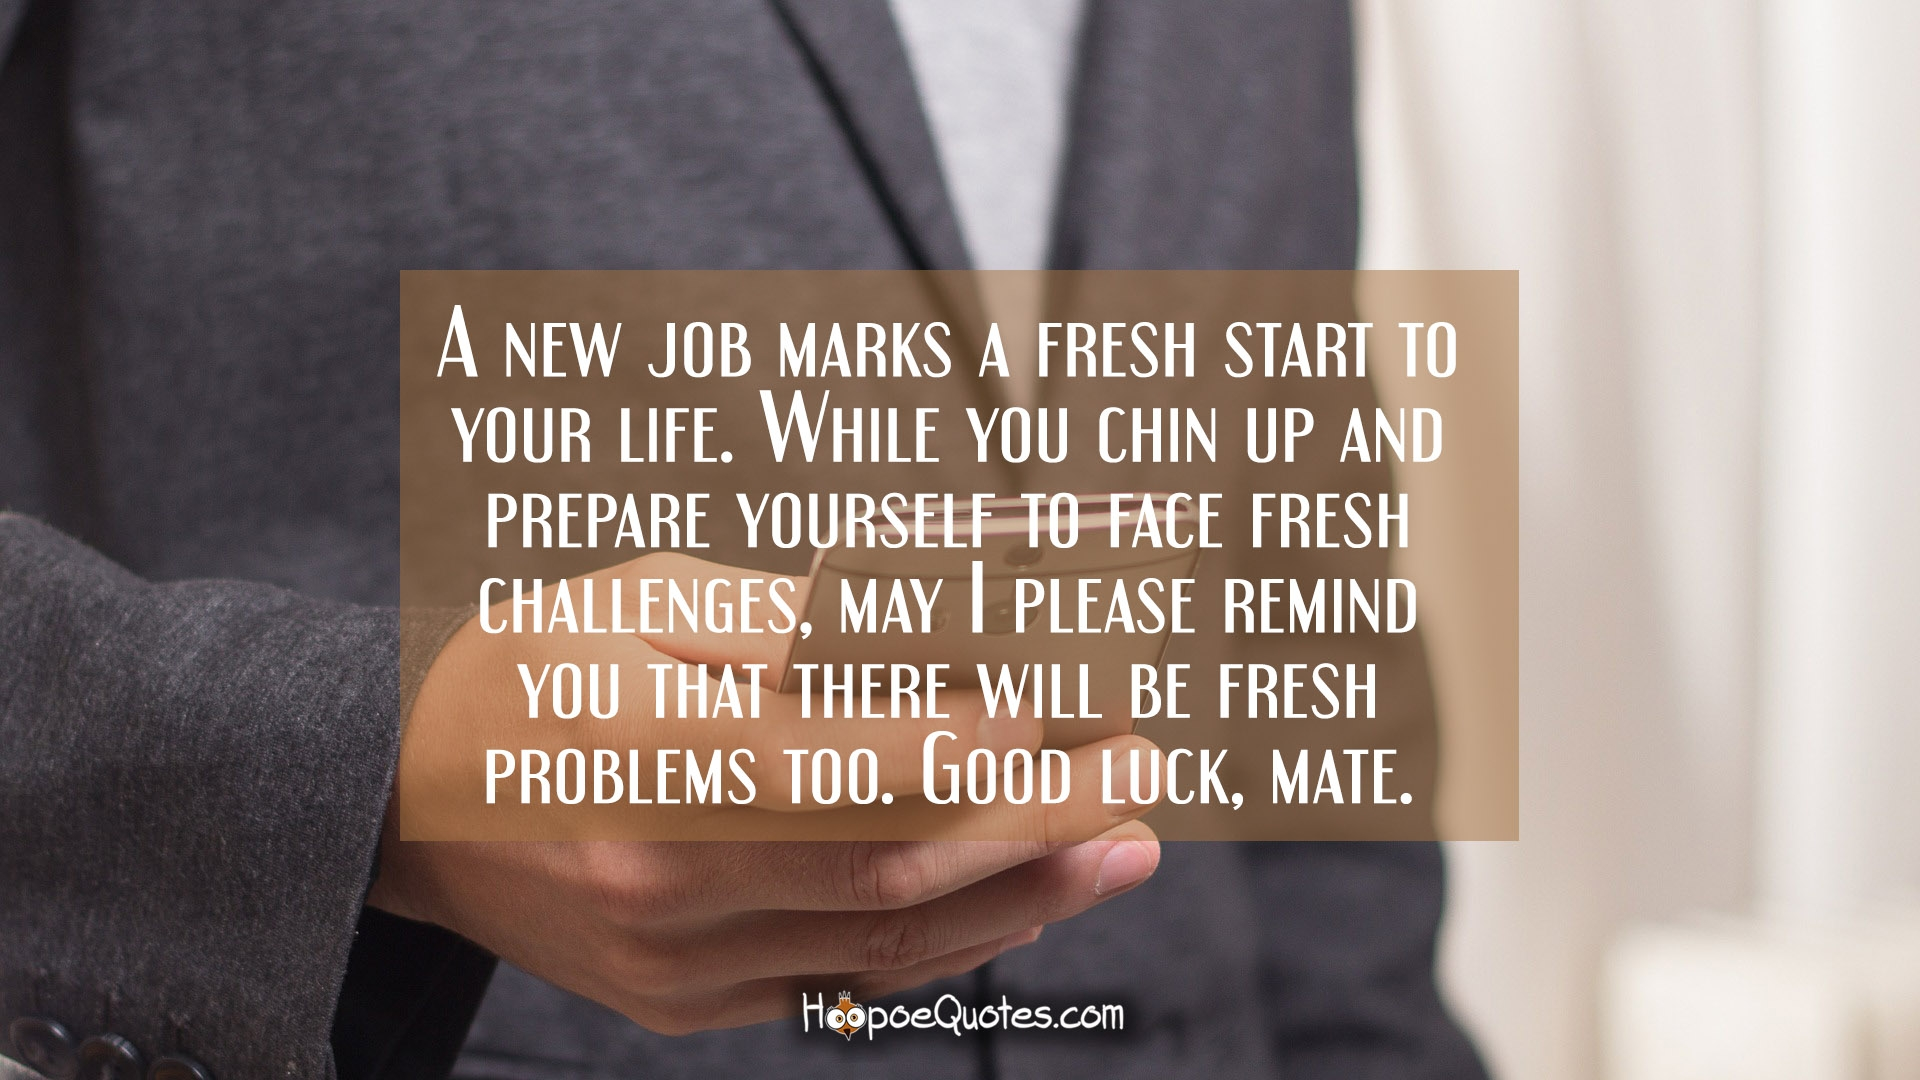 Wallpaper Motivational Quotes 42 A New Job Marks A Fresh Start To Your Life While You Chin